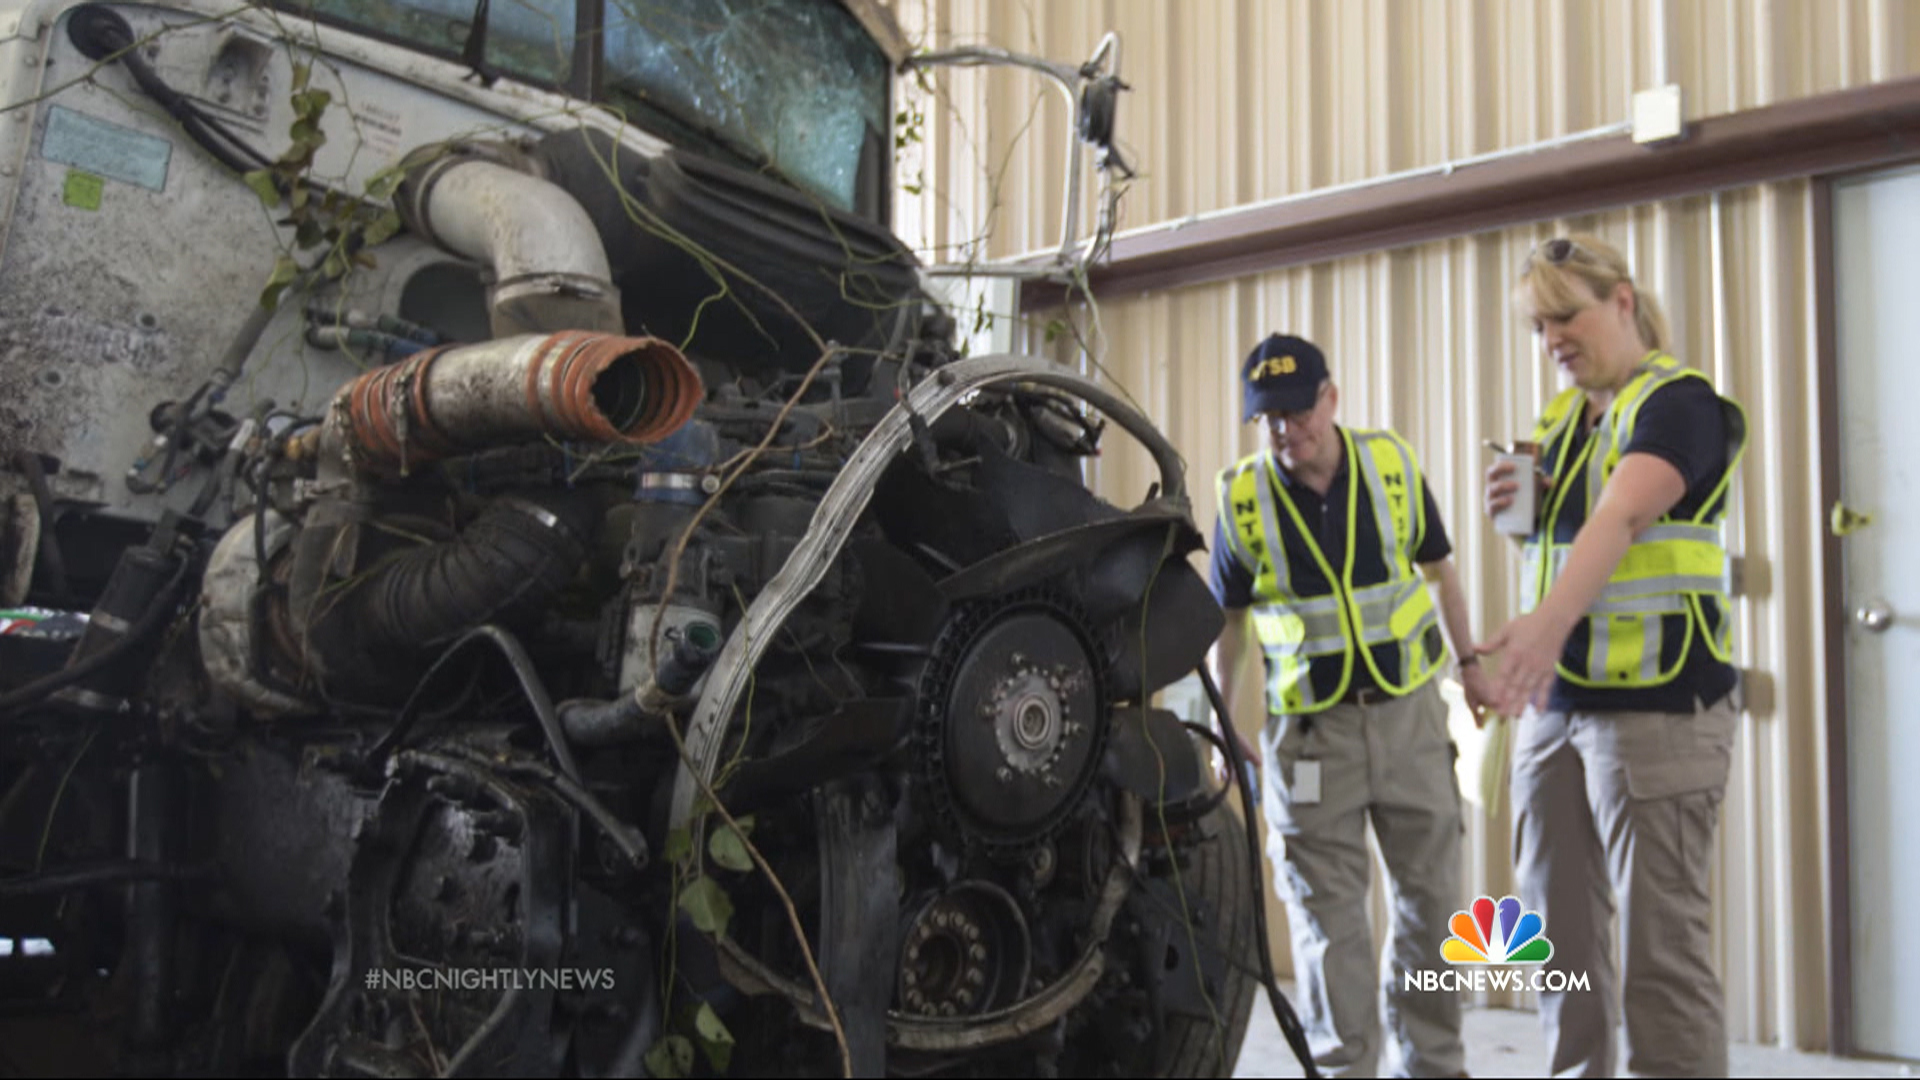 Driver of Semi That Hit Softball Team Bus Said He Was Distracted